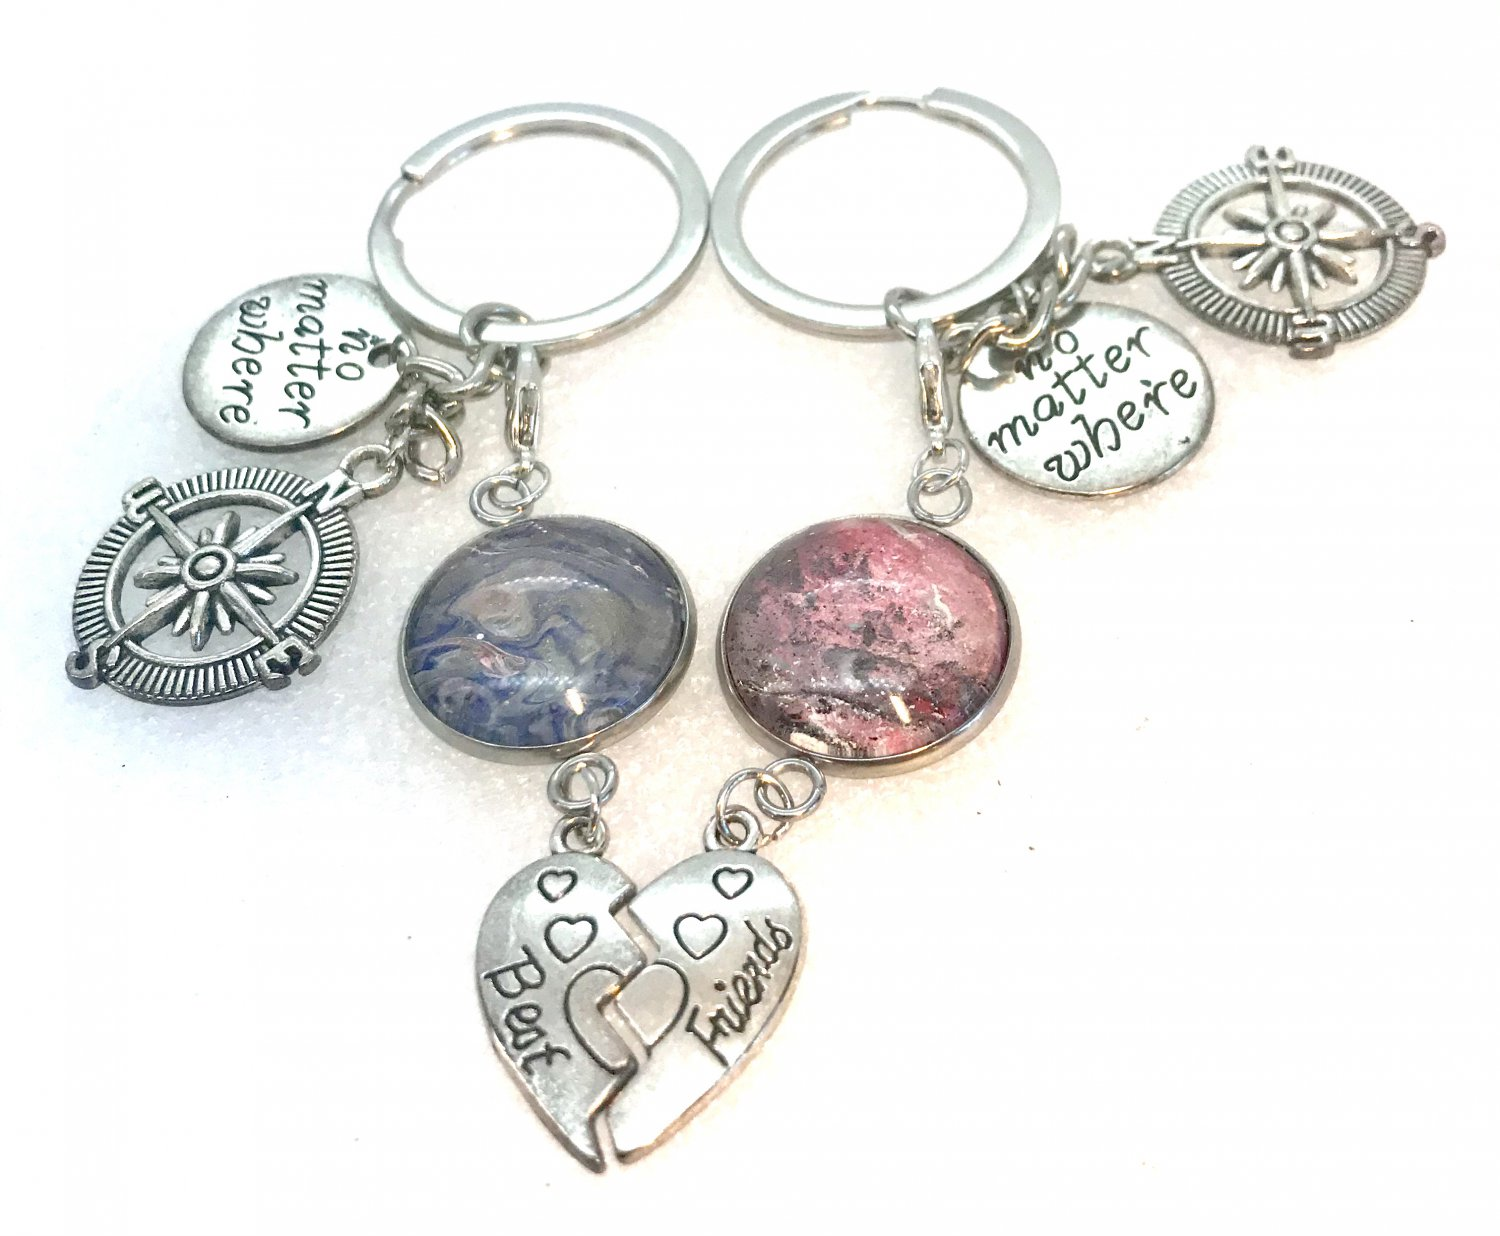 Handmade pair of Keychains Best Friends no matter where with charms